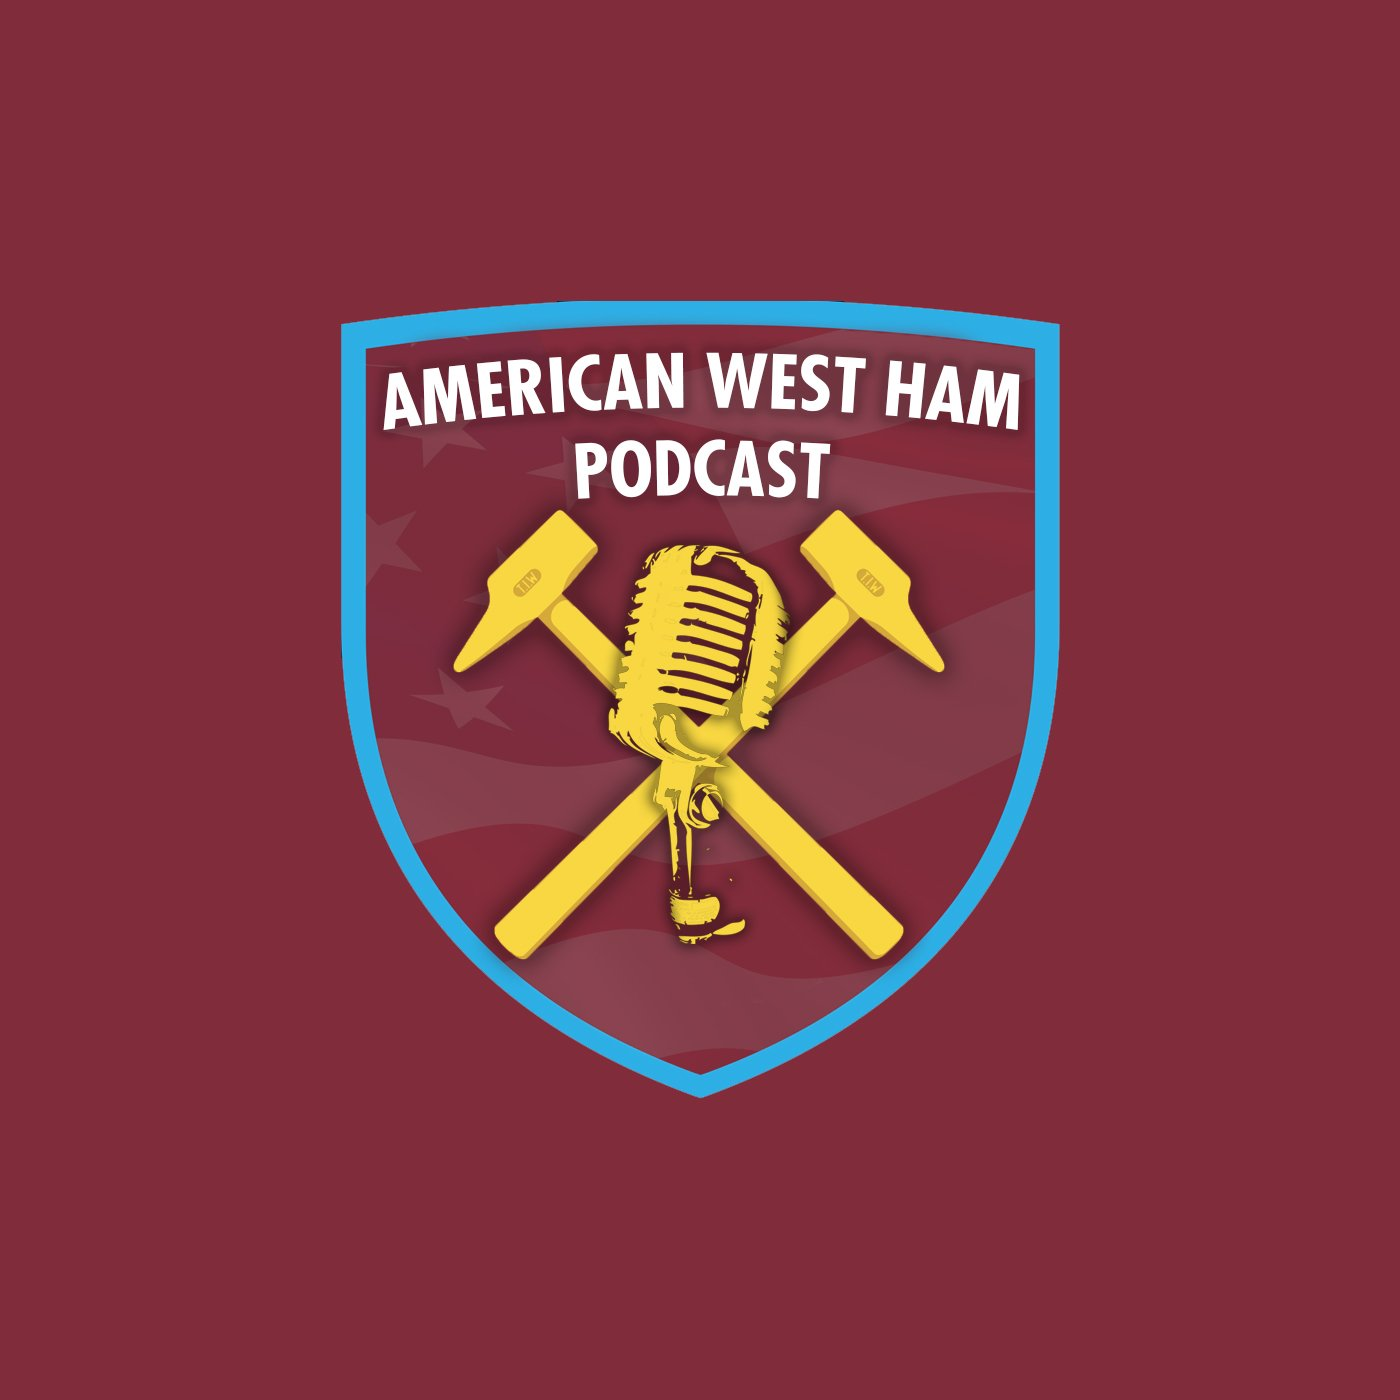 American West Ham Podcast